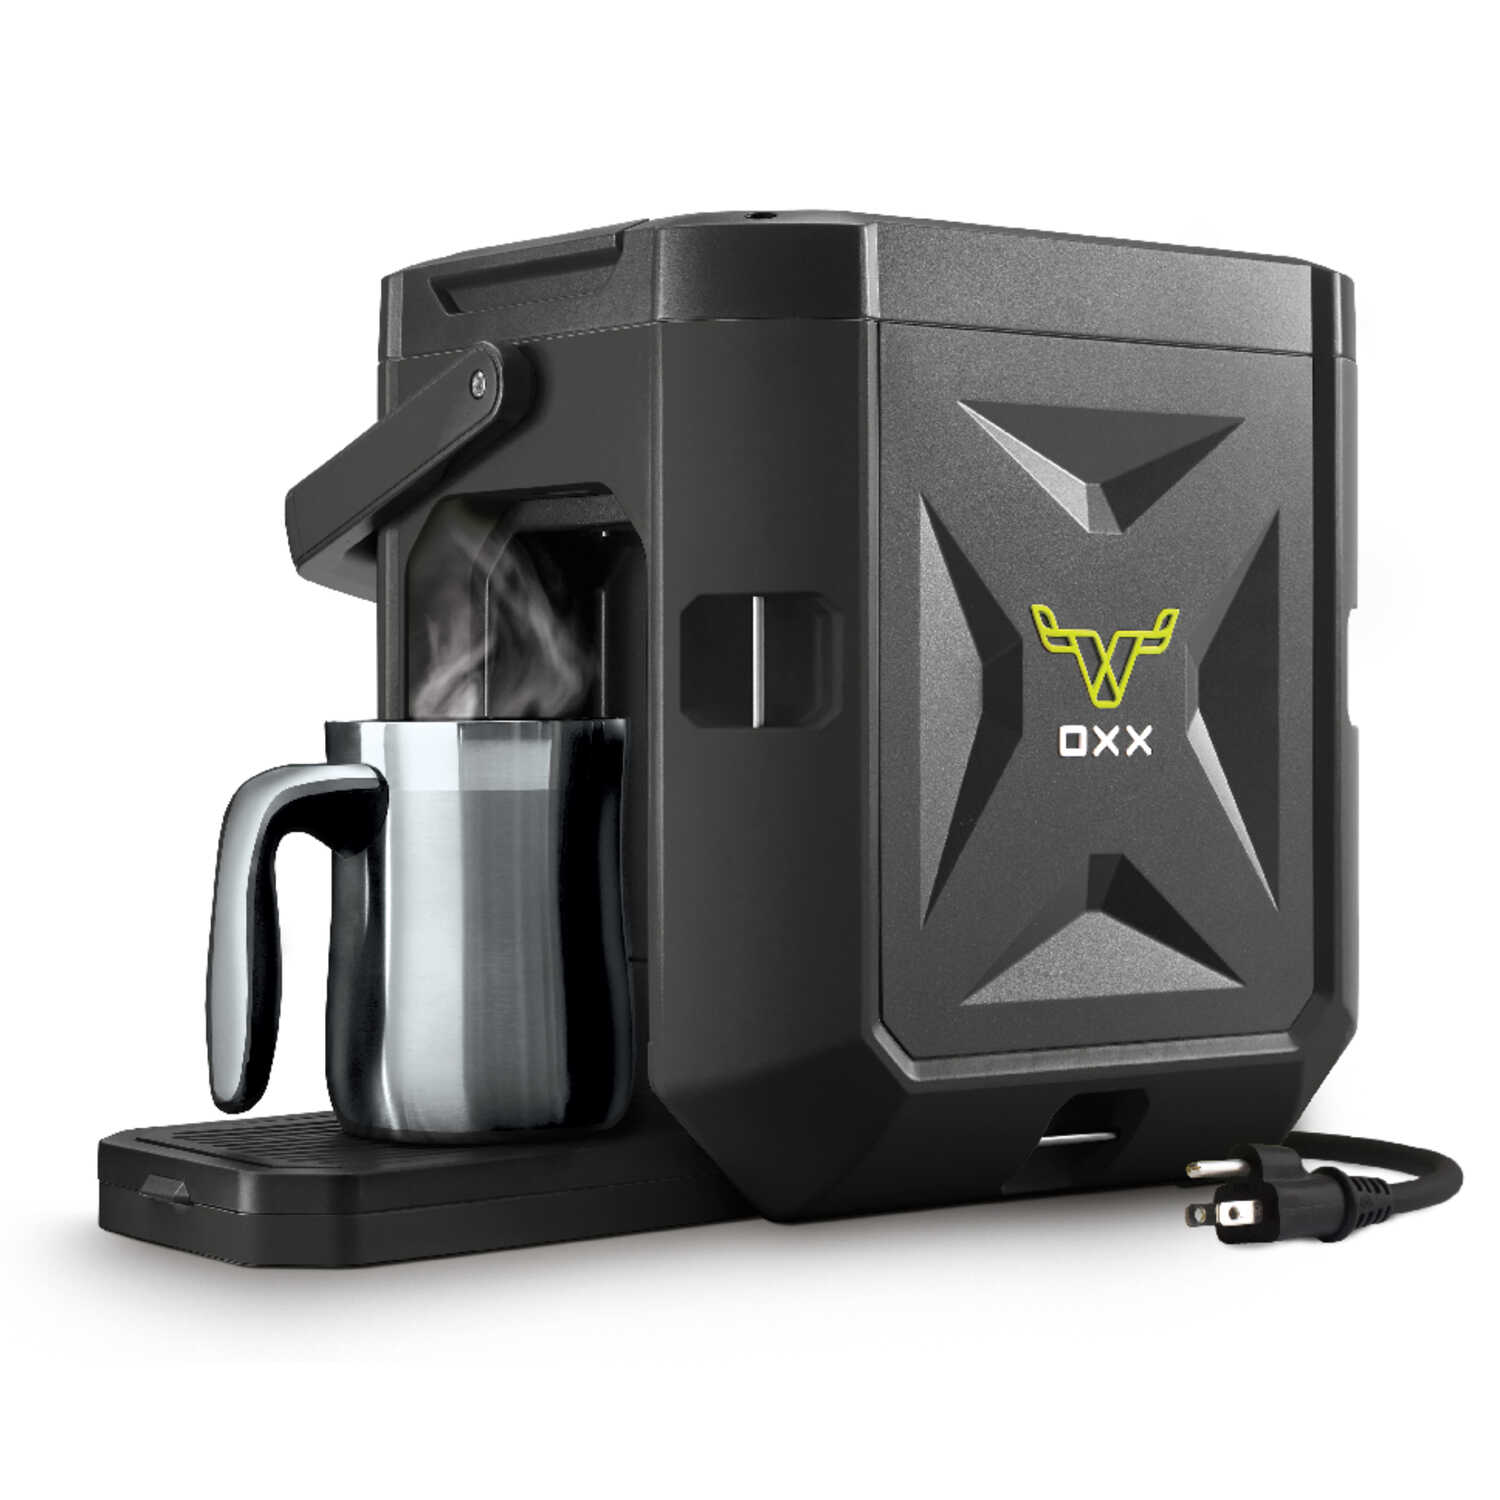 OXX  CoffeeBoxx  Black  Coffee Maker  85 oz.